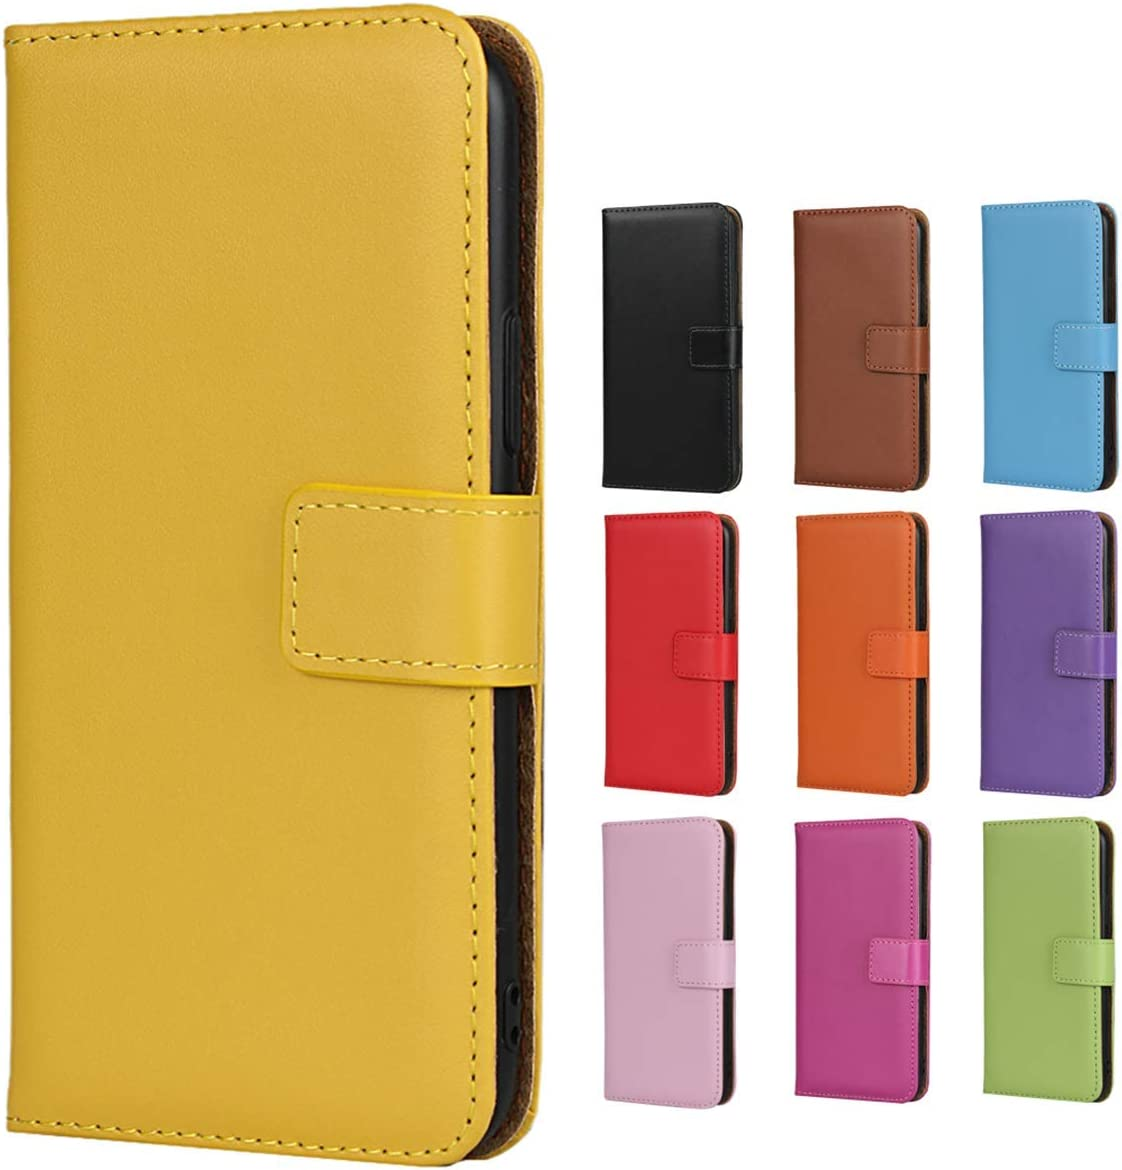 Jaorty iPhone 6/6s Case,Genuine Leather Premium Leather Folio Wallet Case Flip Cover Case Book Design Kickstand Feature & Magnetic Closure & Card Slots/Cash Compartment iPhone 6/6s,Yellow